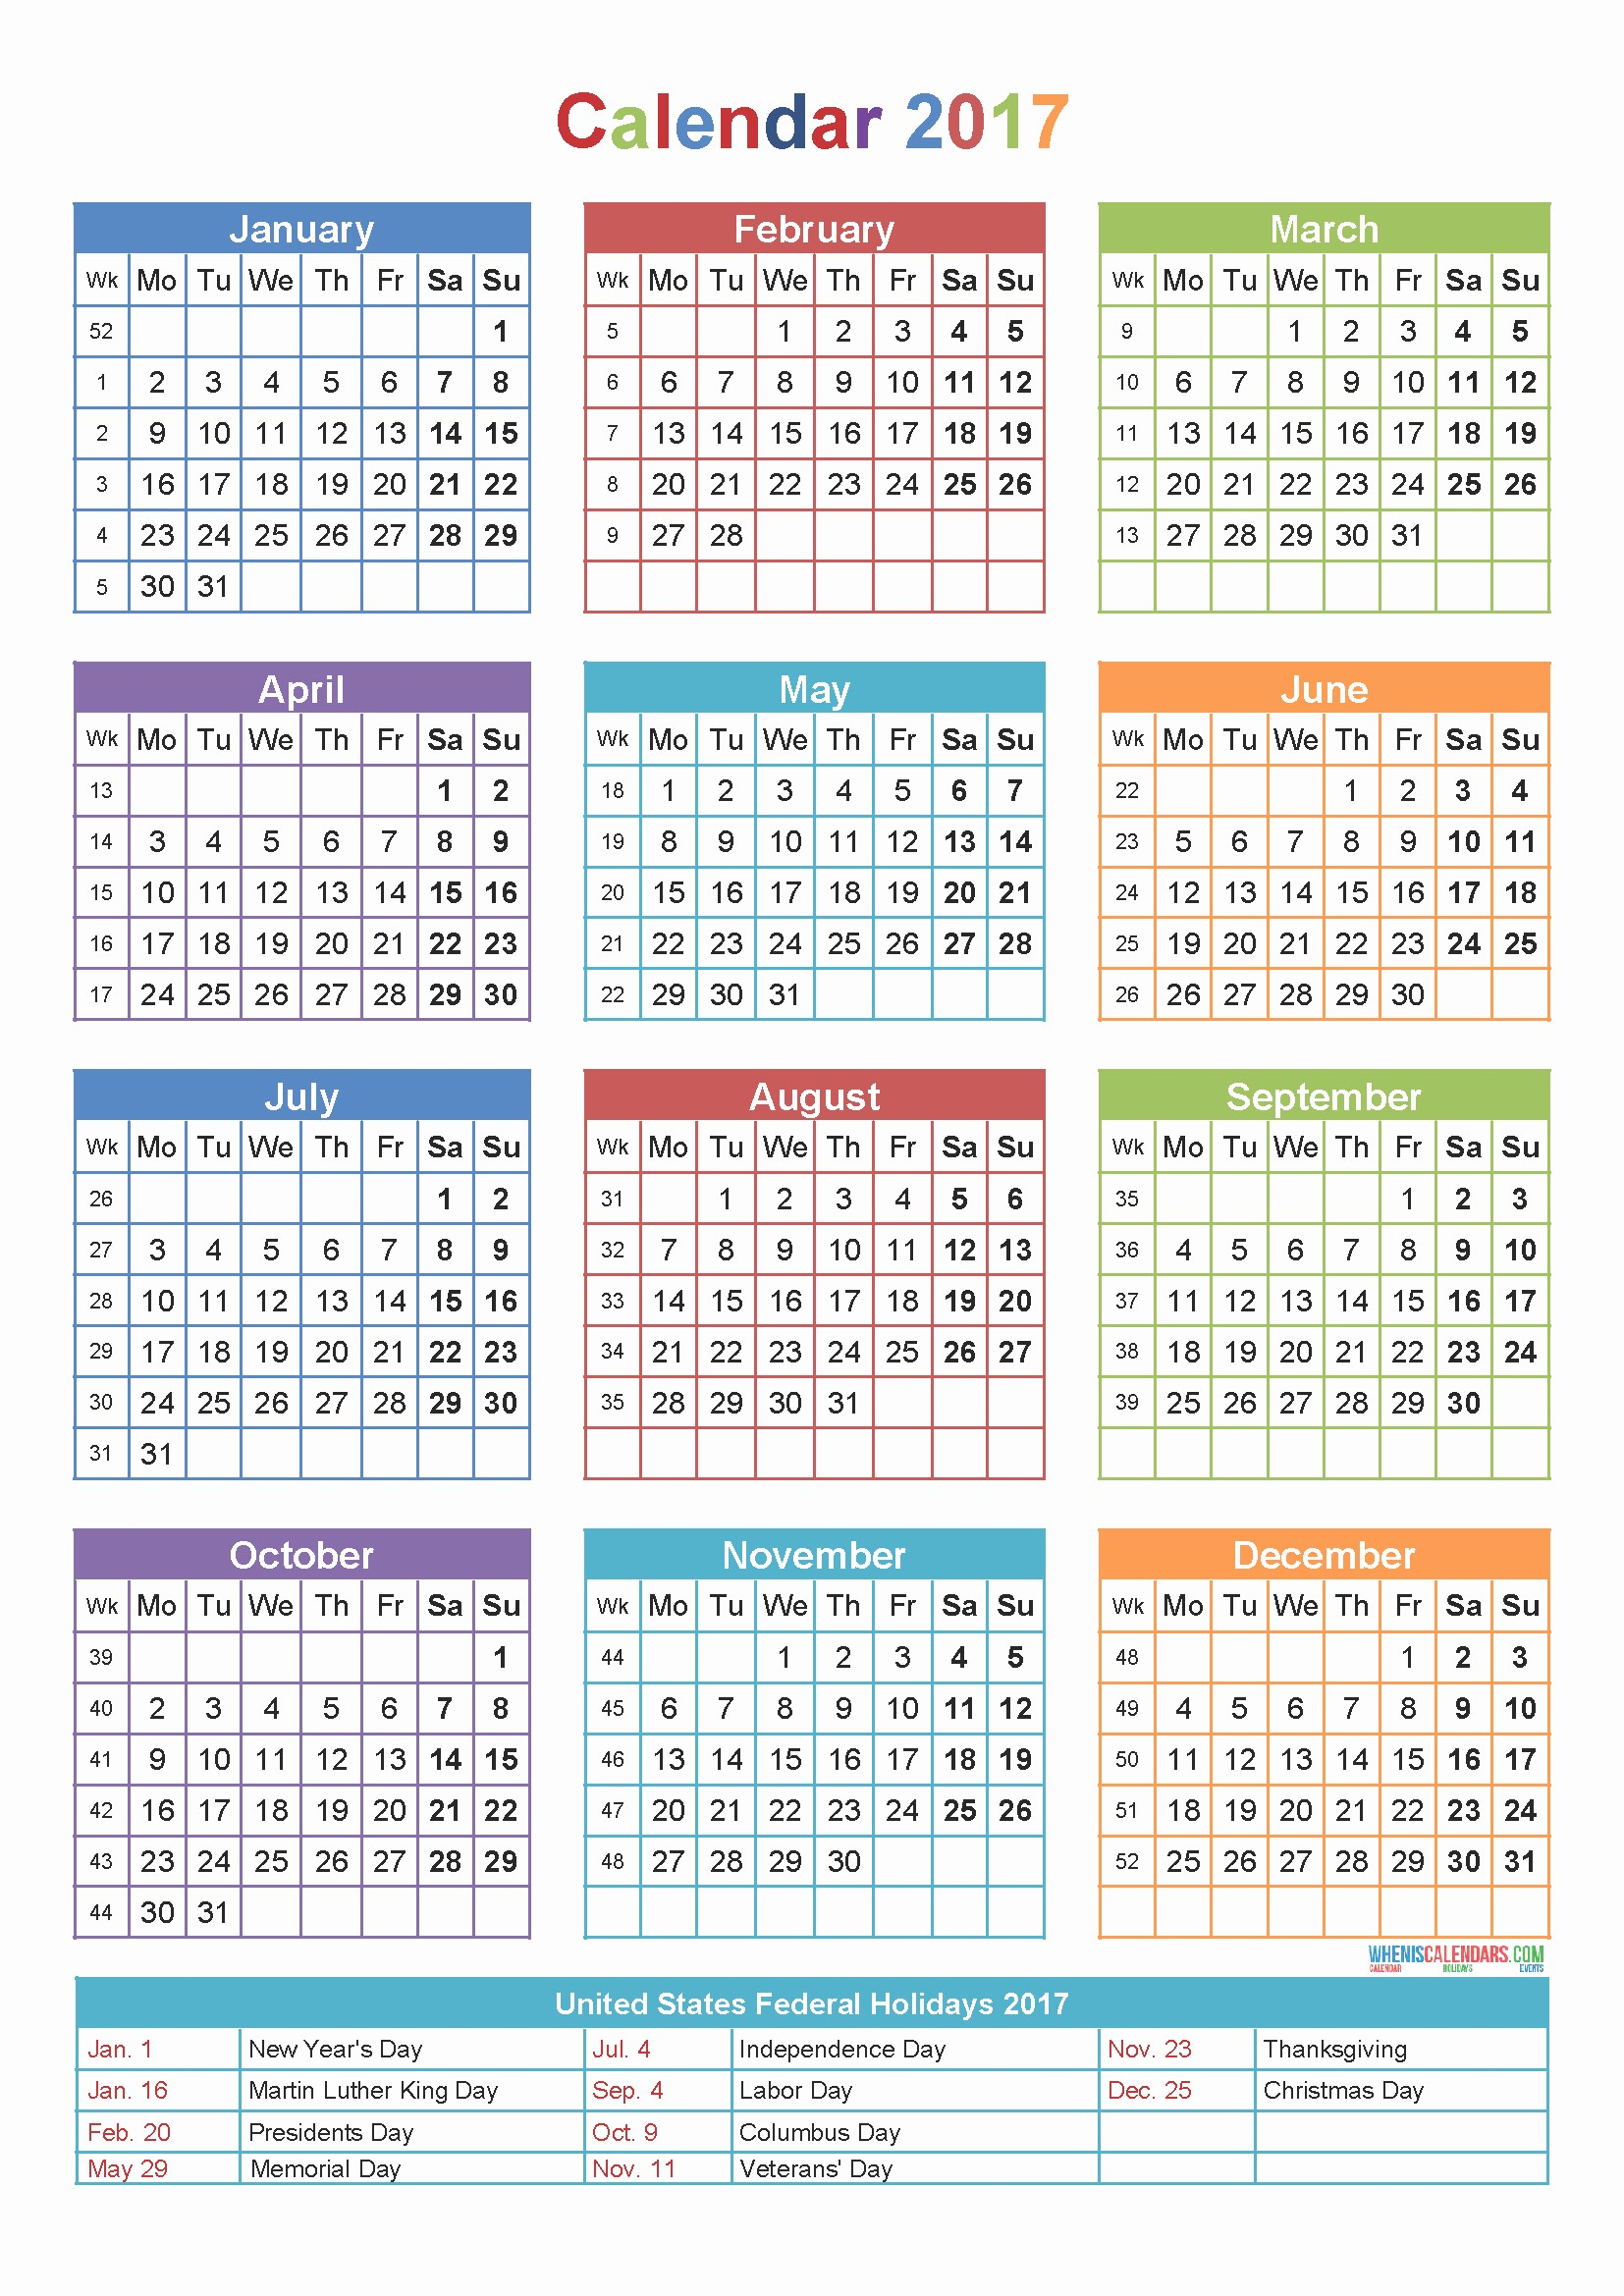 Calendar Template 2019 2017 Elegant 2017 Printable Yearly Calendar with Holidays